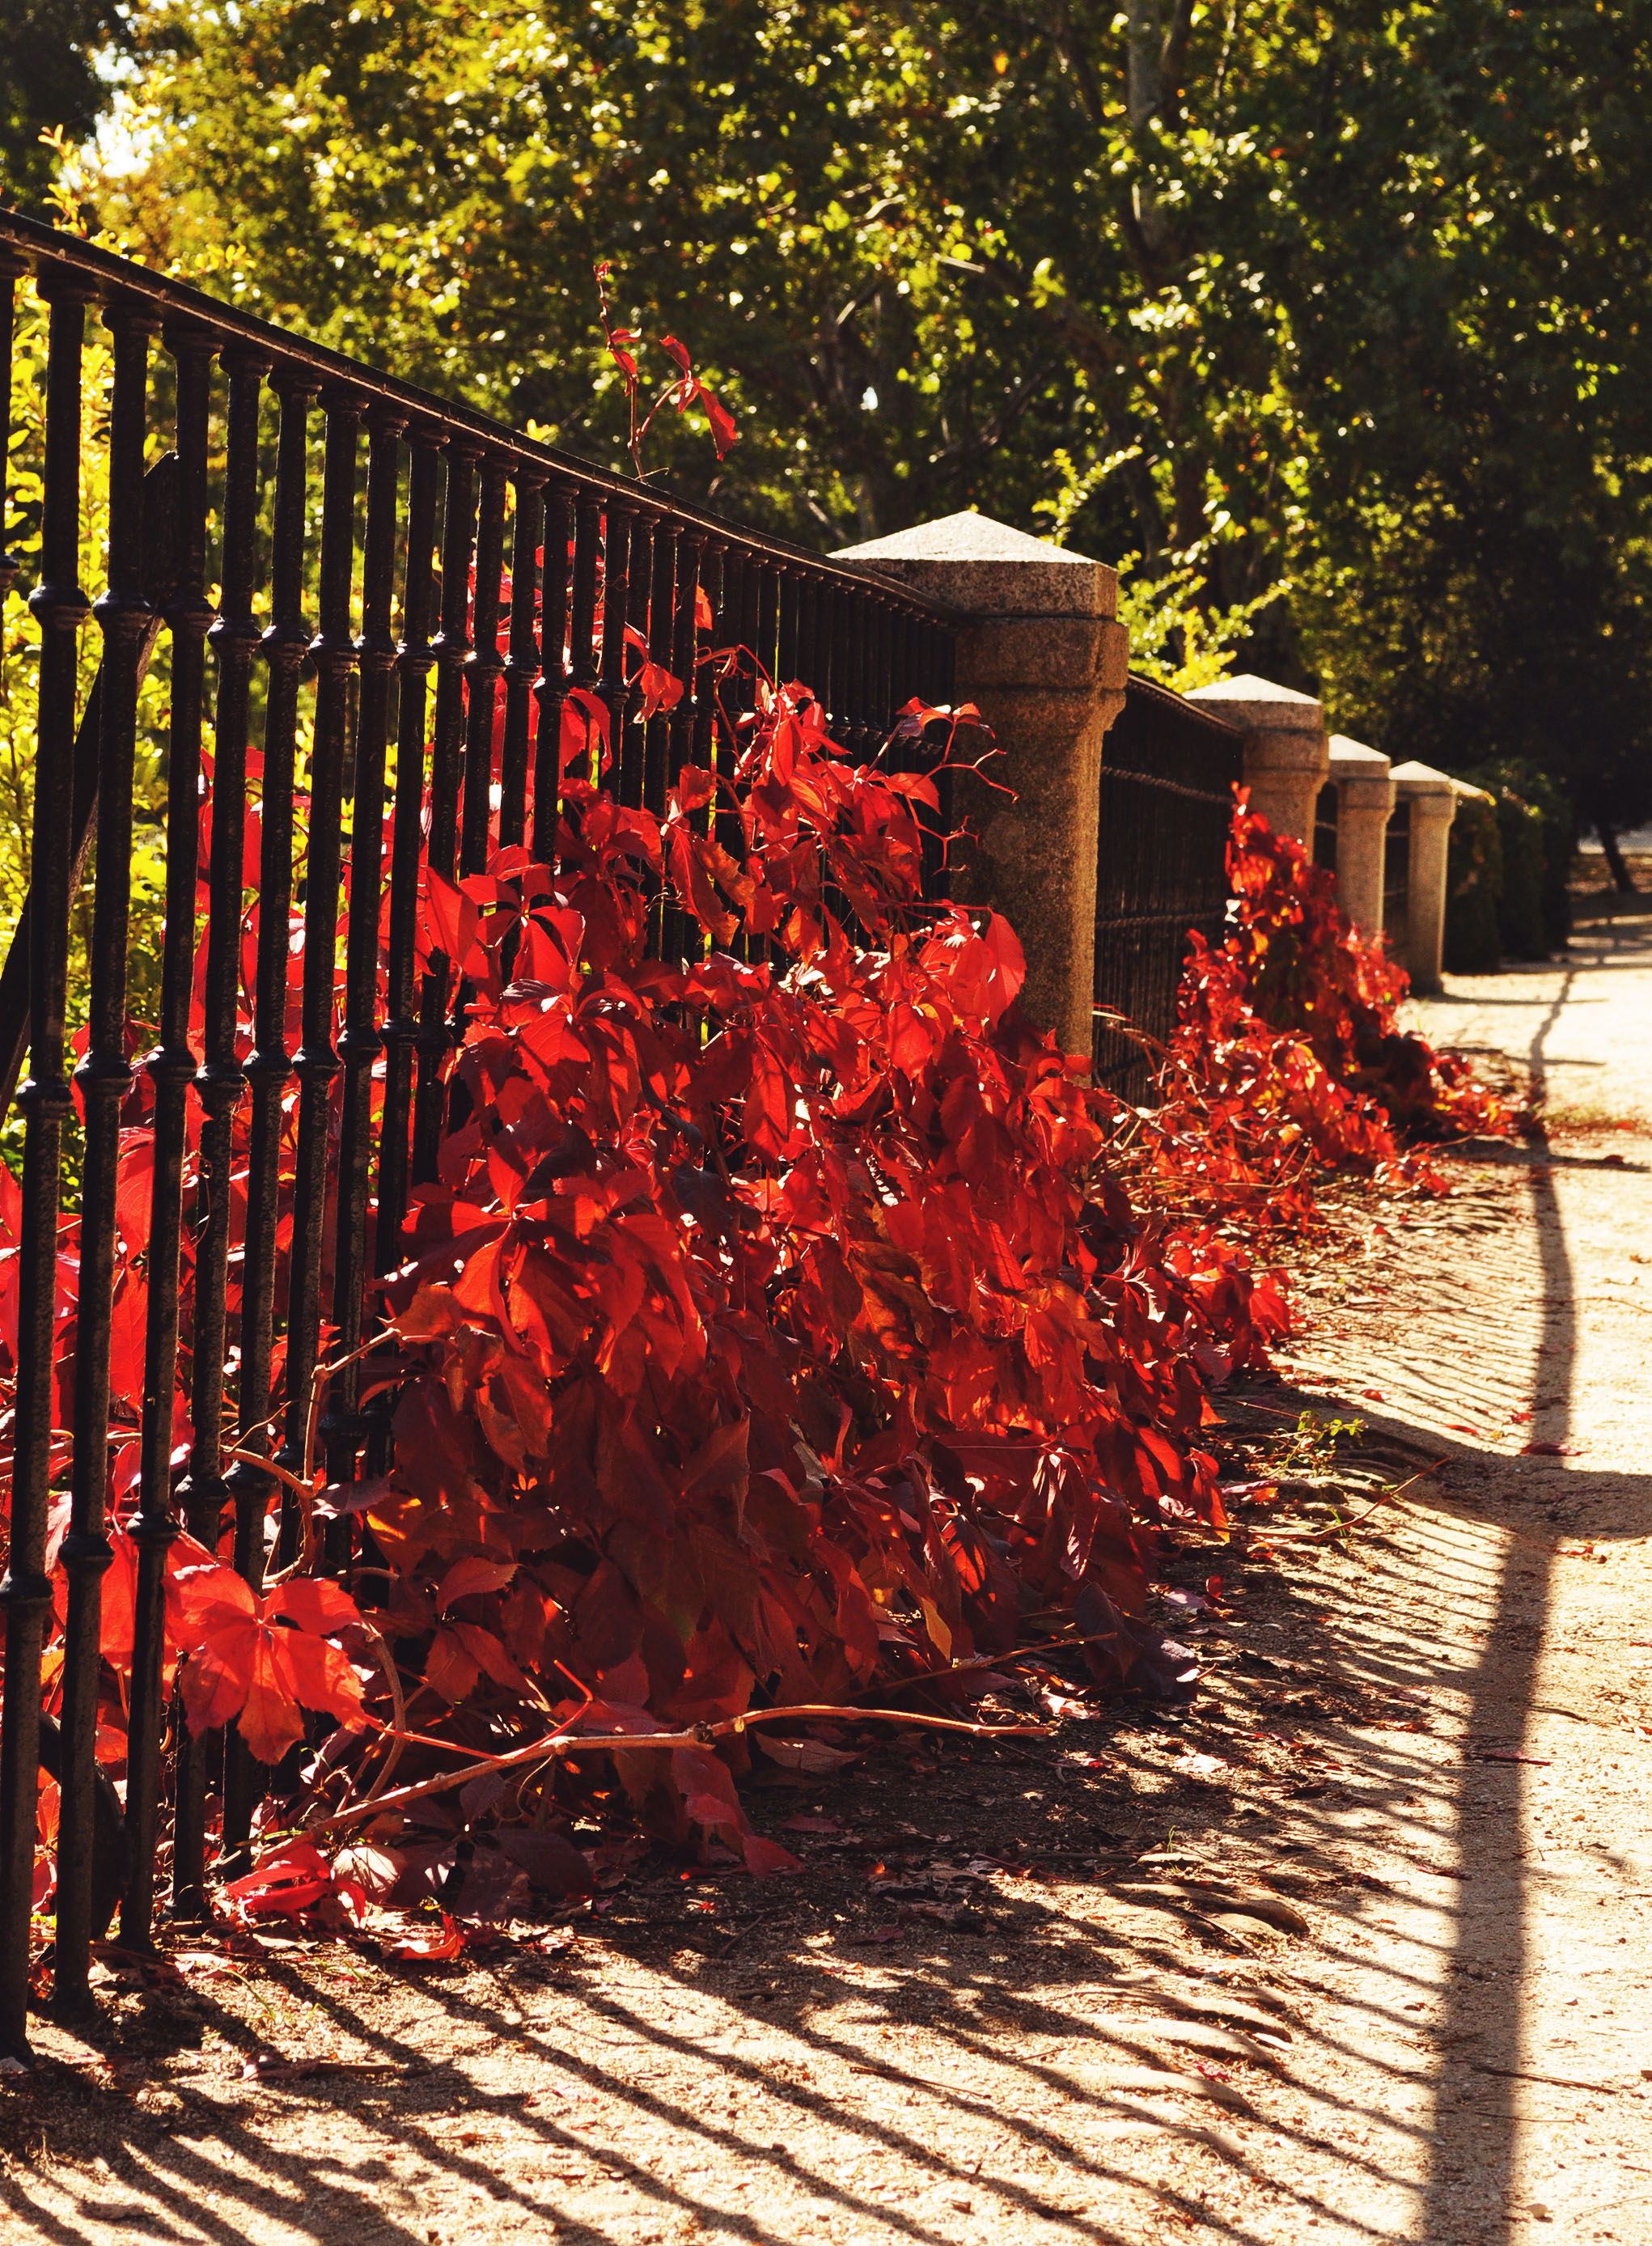 madrid-capricho-park-red-ivy